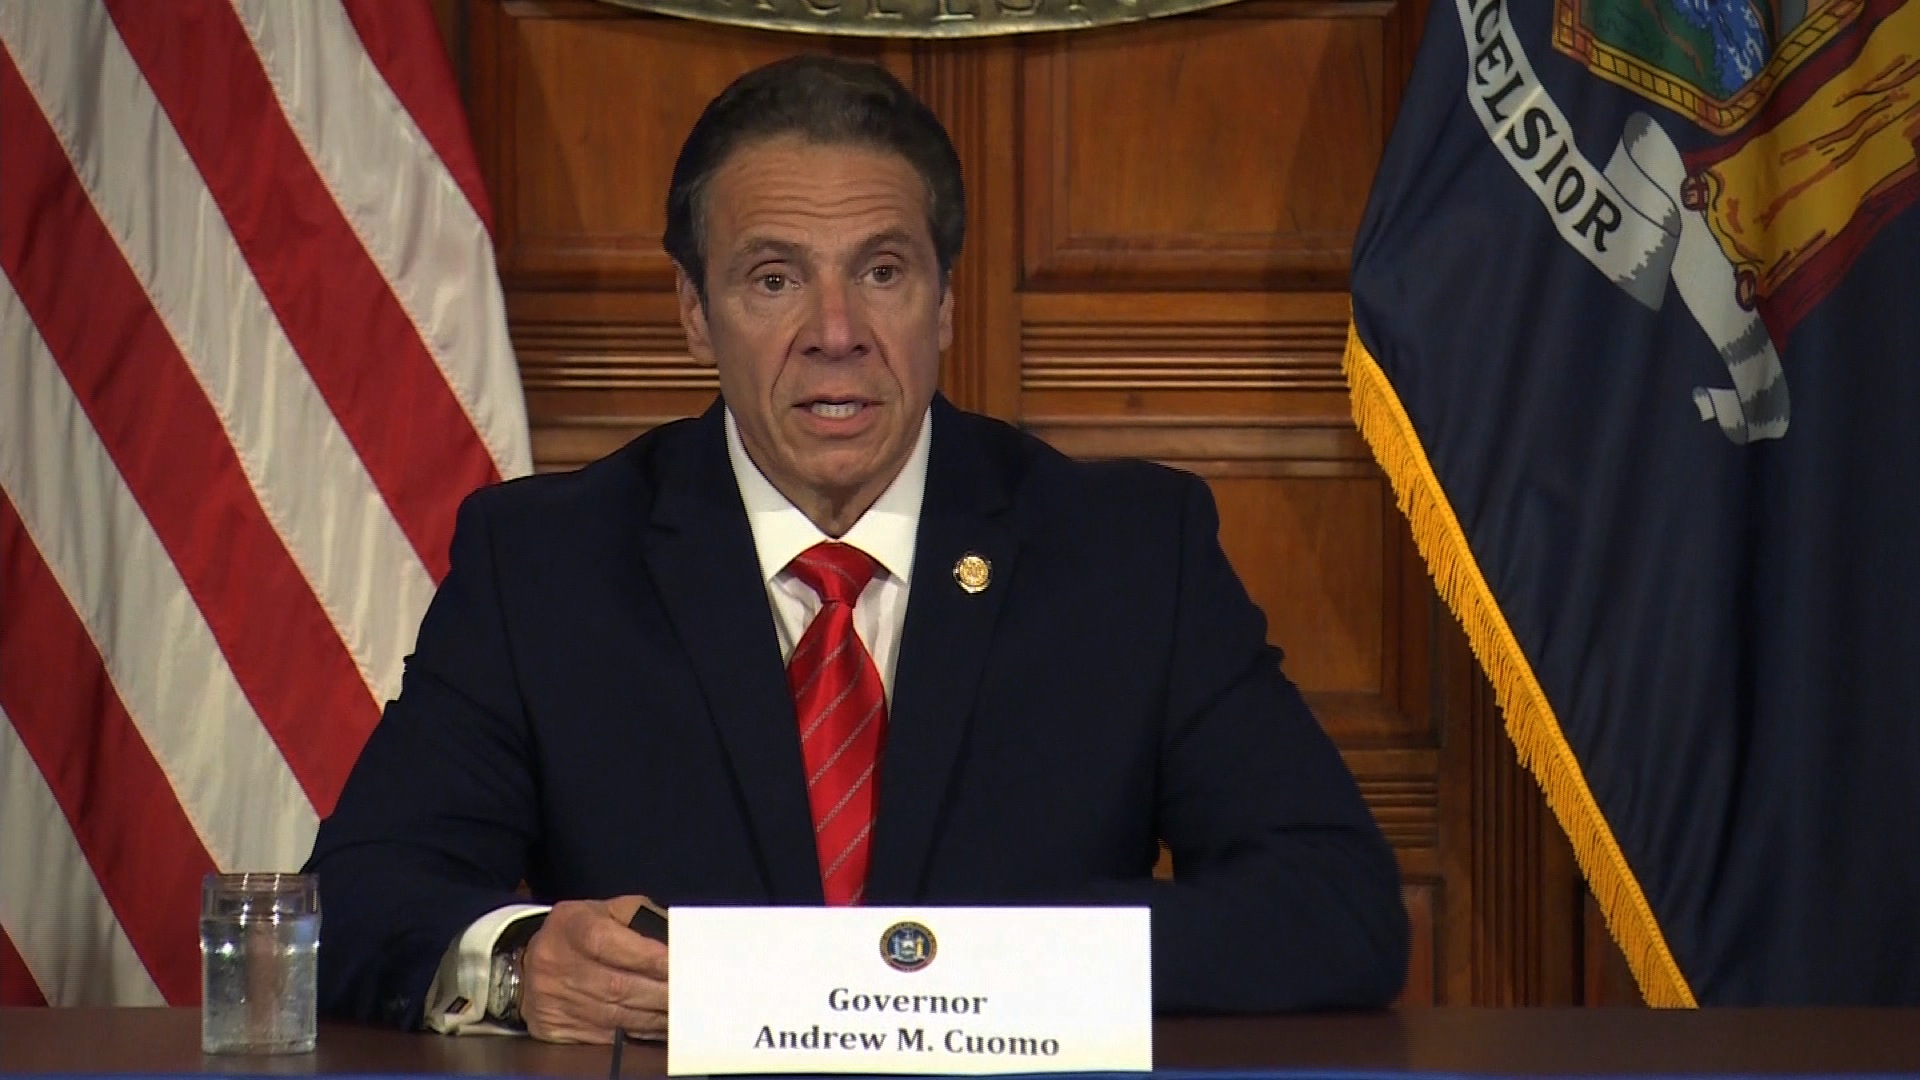 New York Gov. Andrew Cuomo speaks during a press briefing in Albany, New York, on May 1.